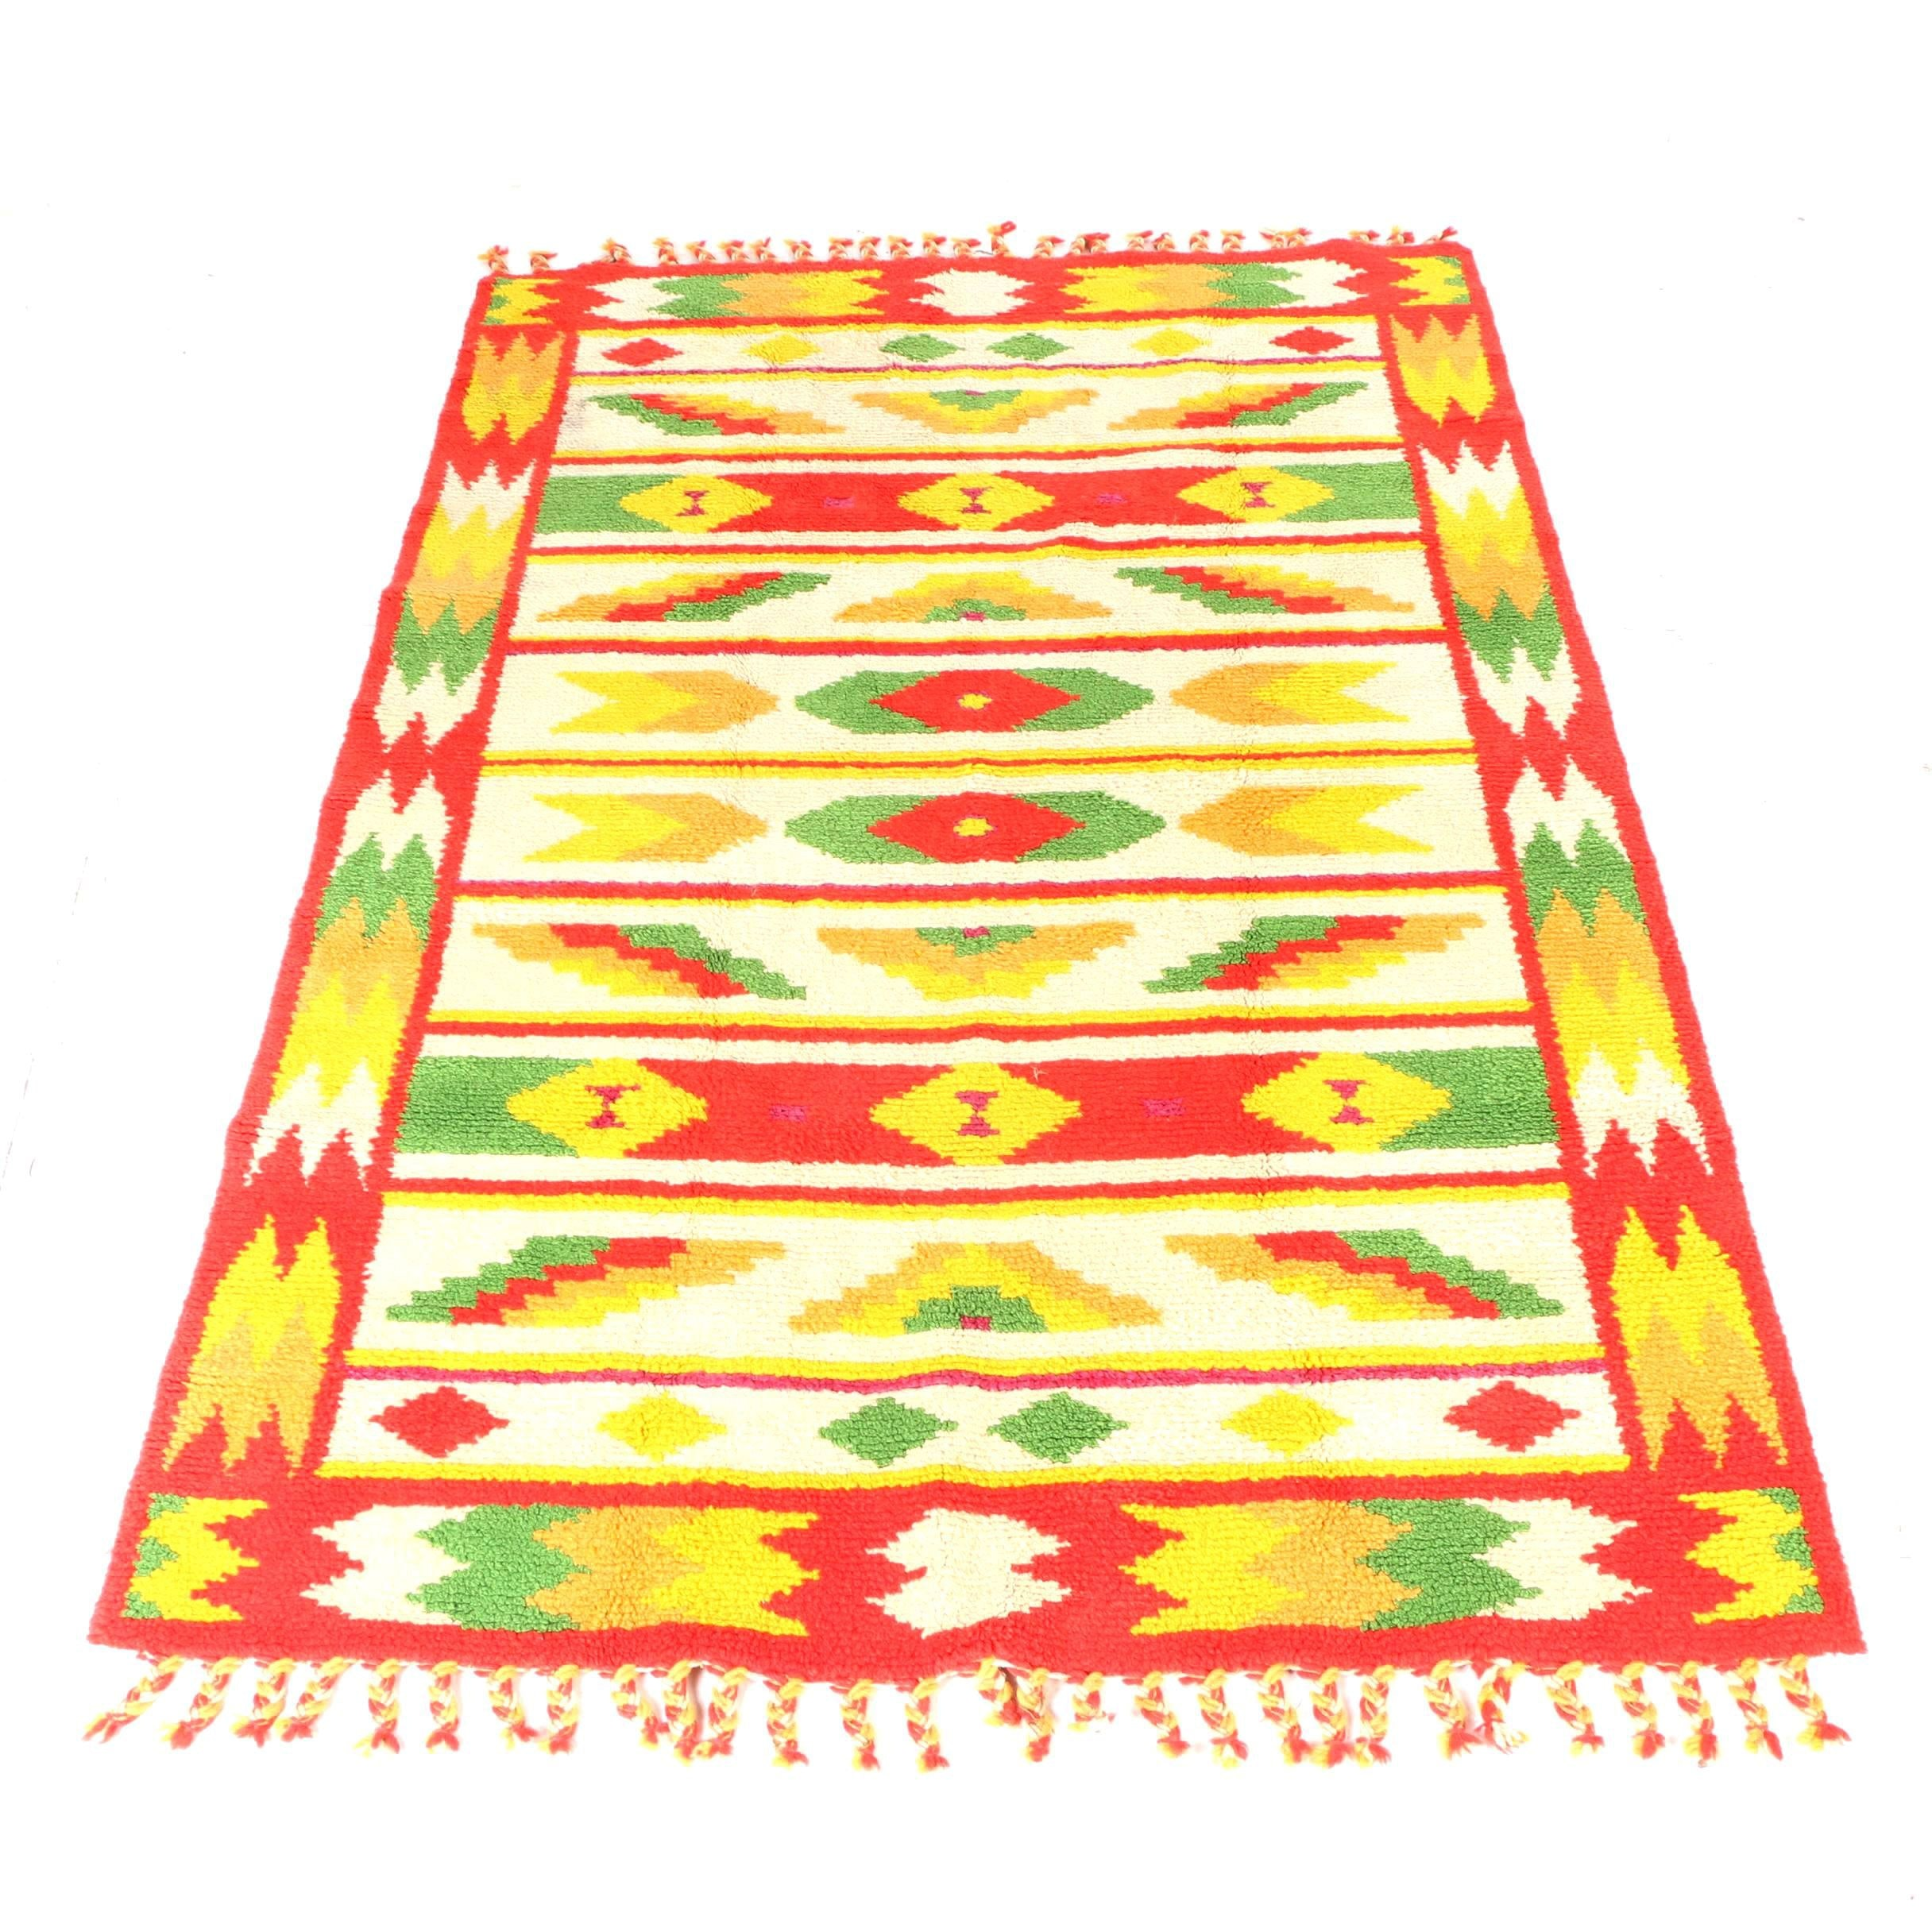 "Hand-Knotted ""Moroccan Bazaar"" Wool Area Rug"